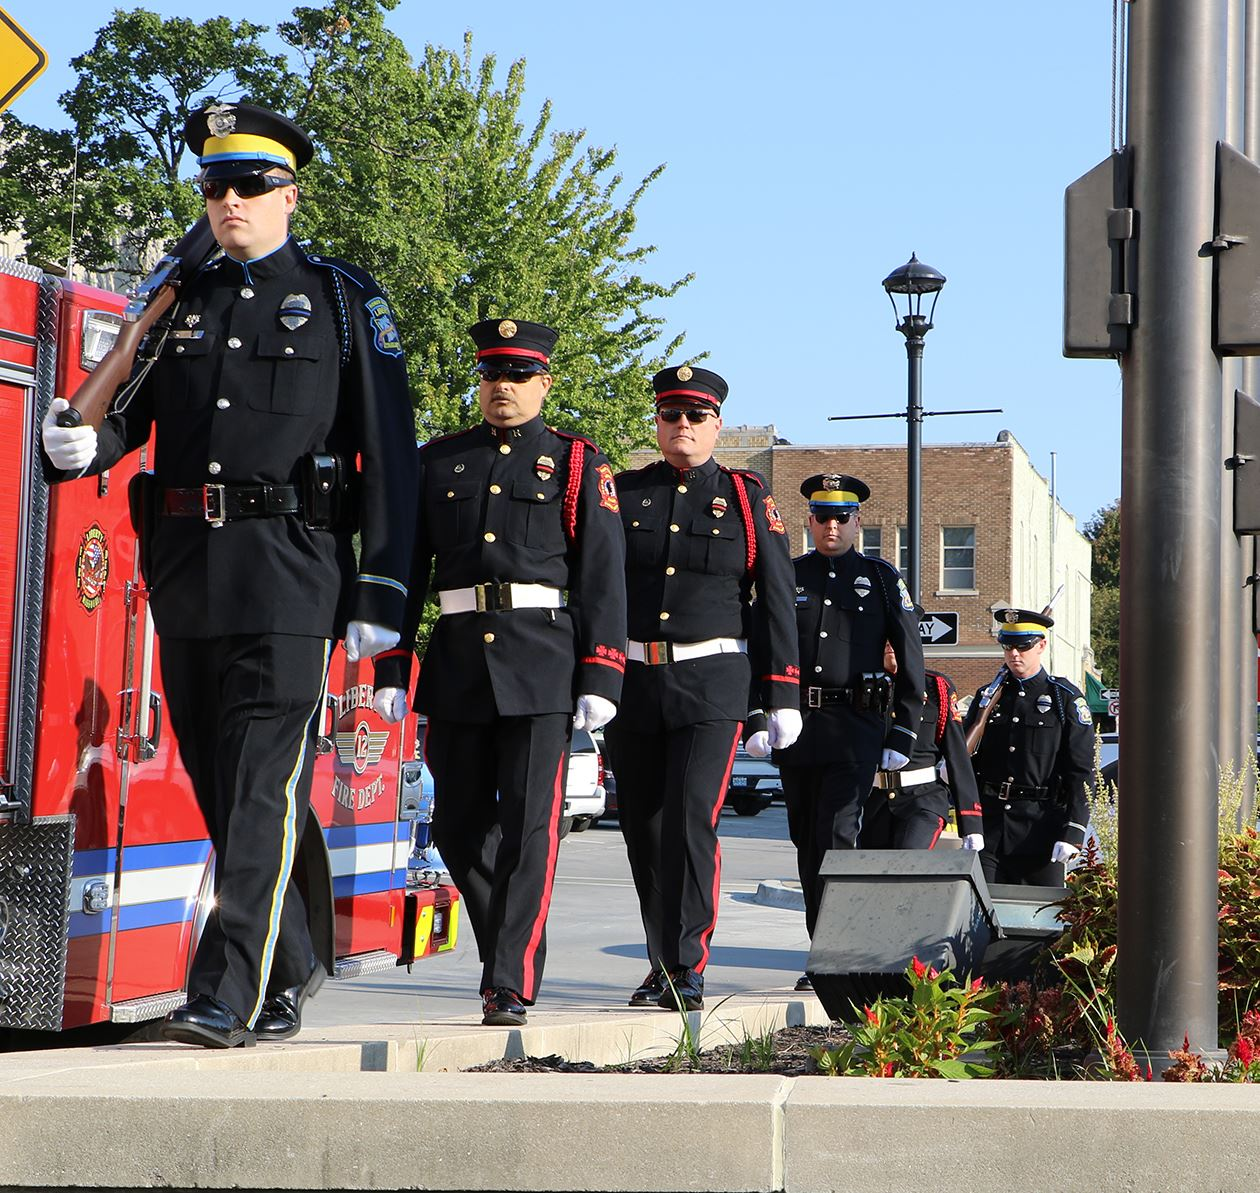 FD_PD honor guards6